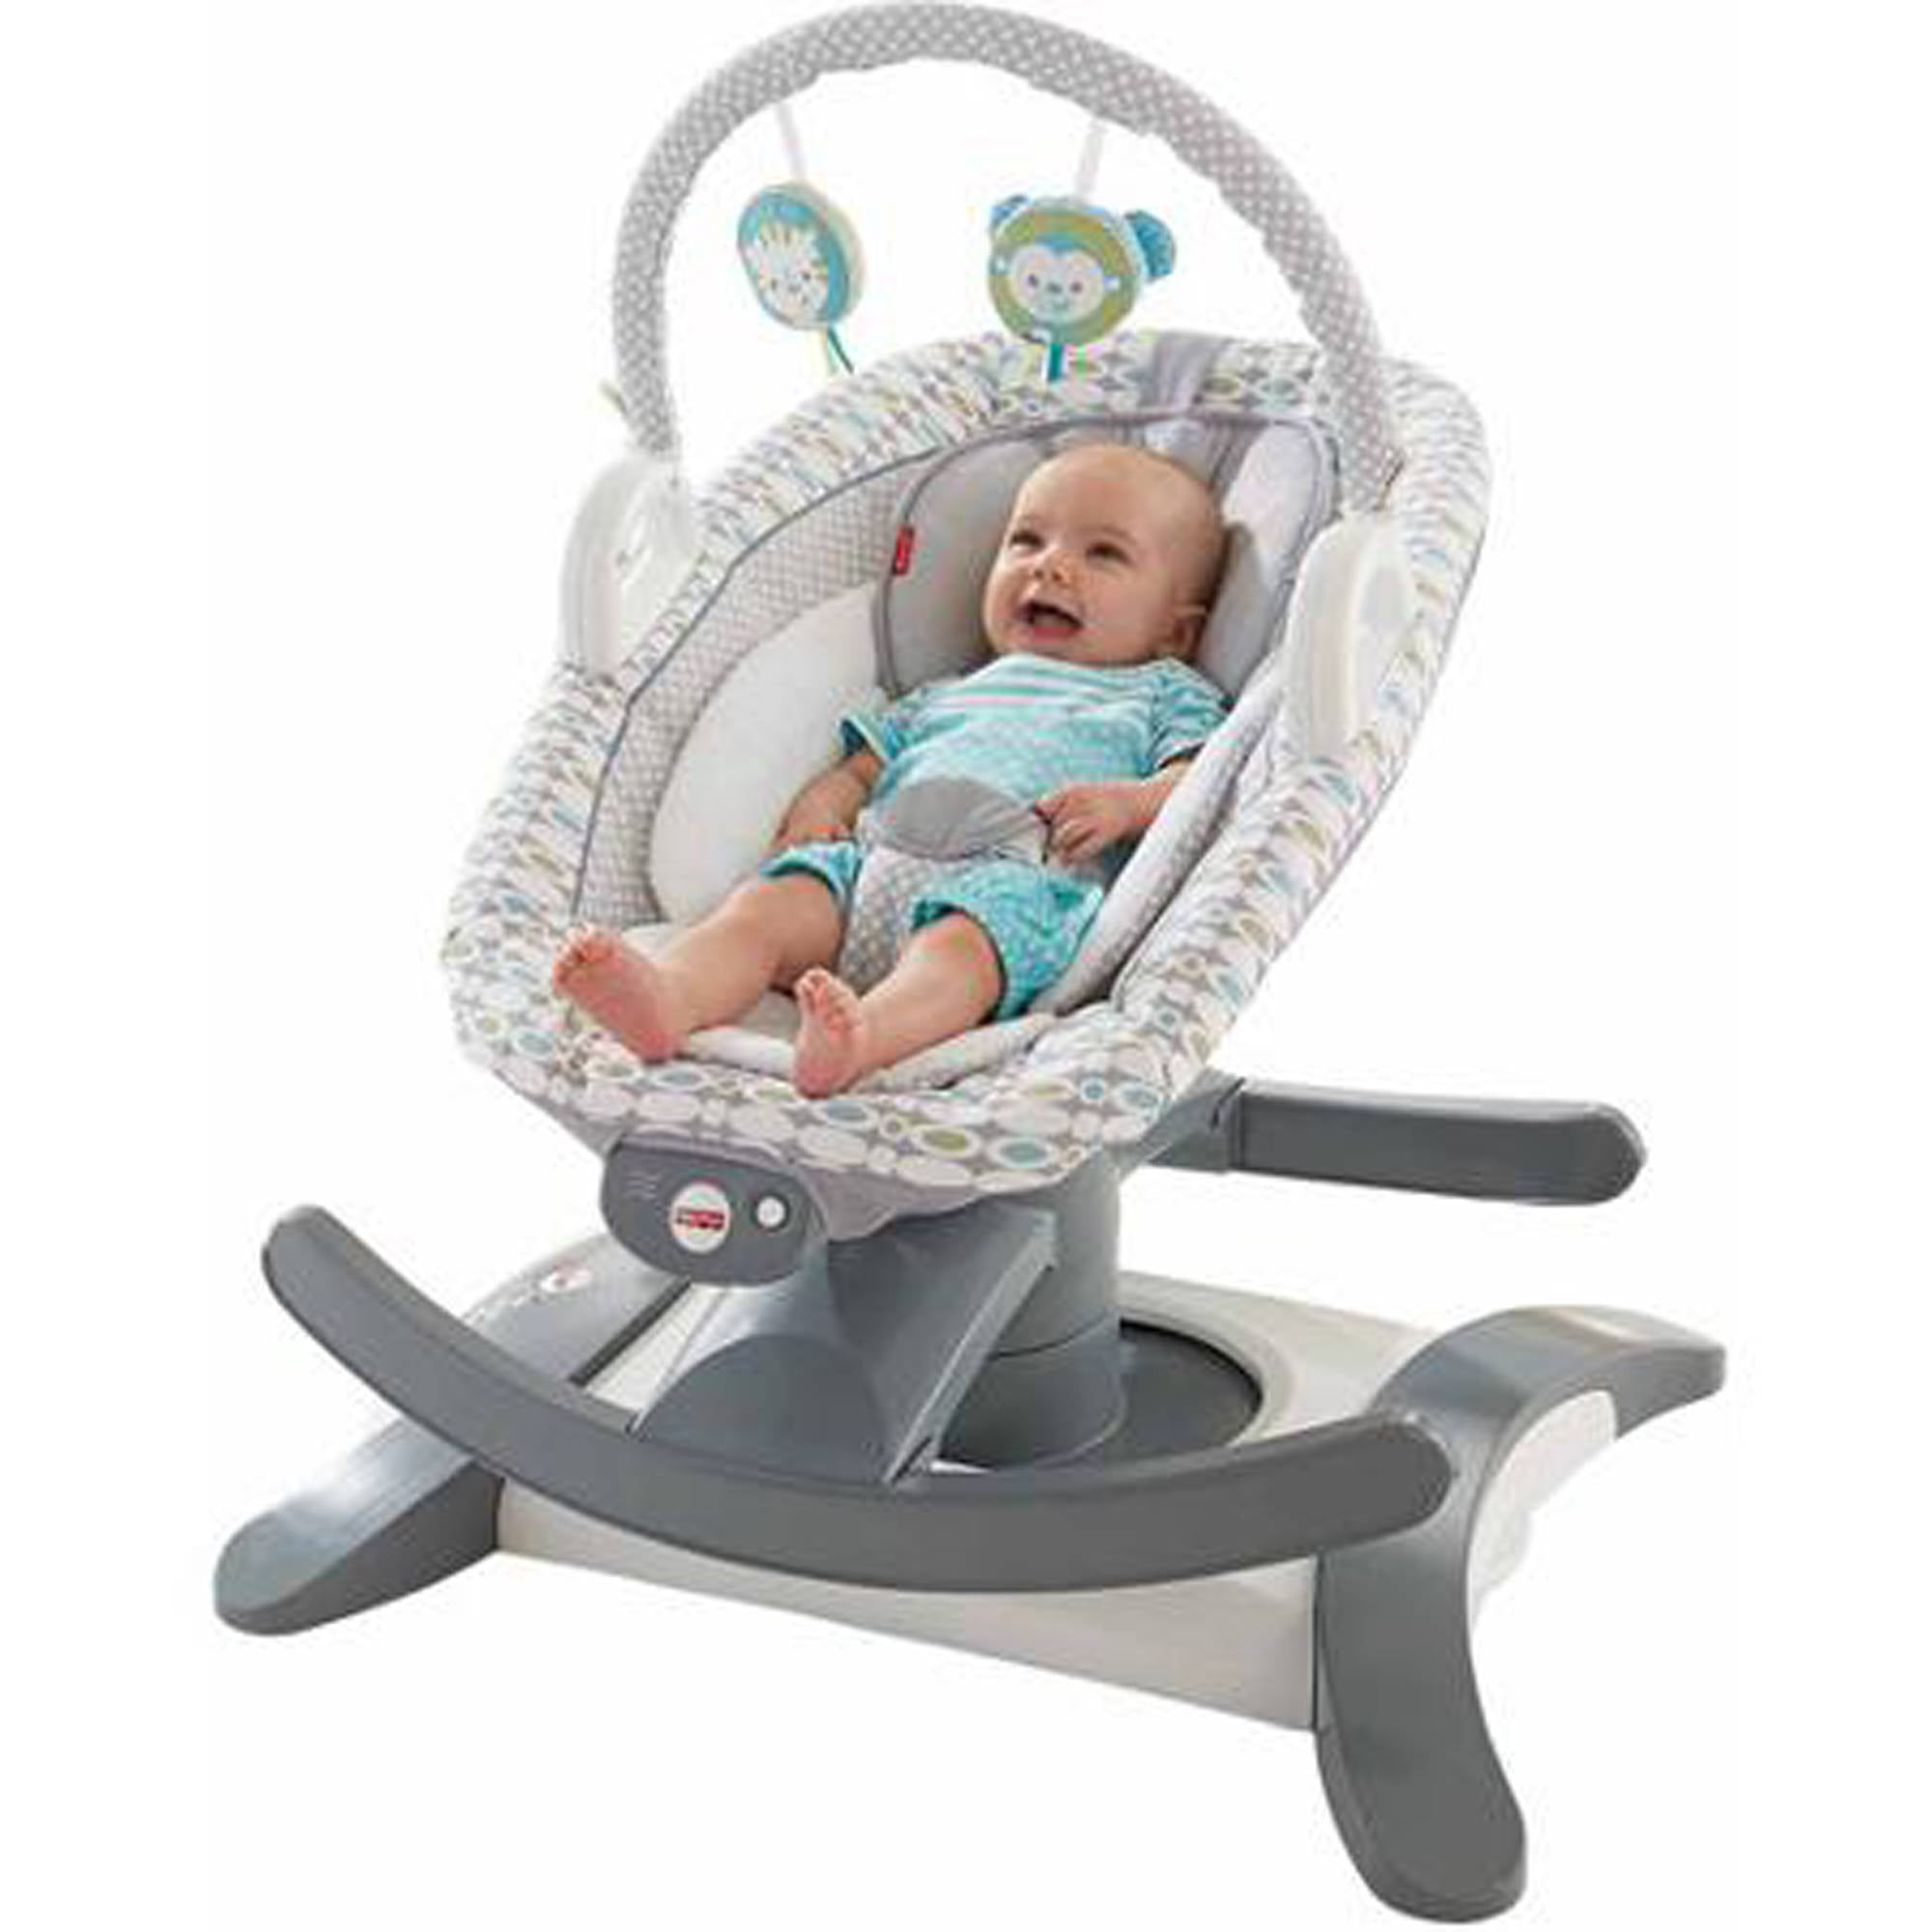 Portable Toddler Vibrating Musical Bouncy Swing Baby Soothing Rocker Chair Toys